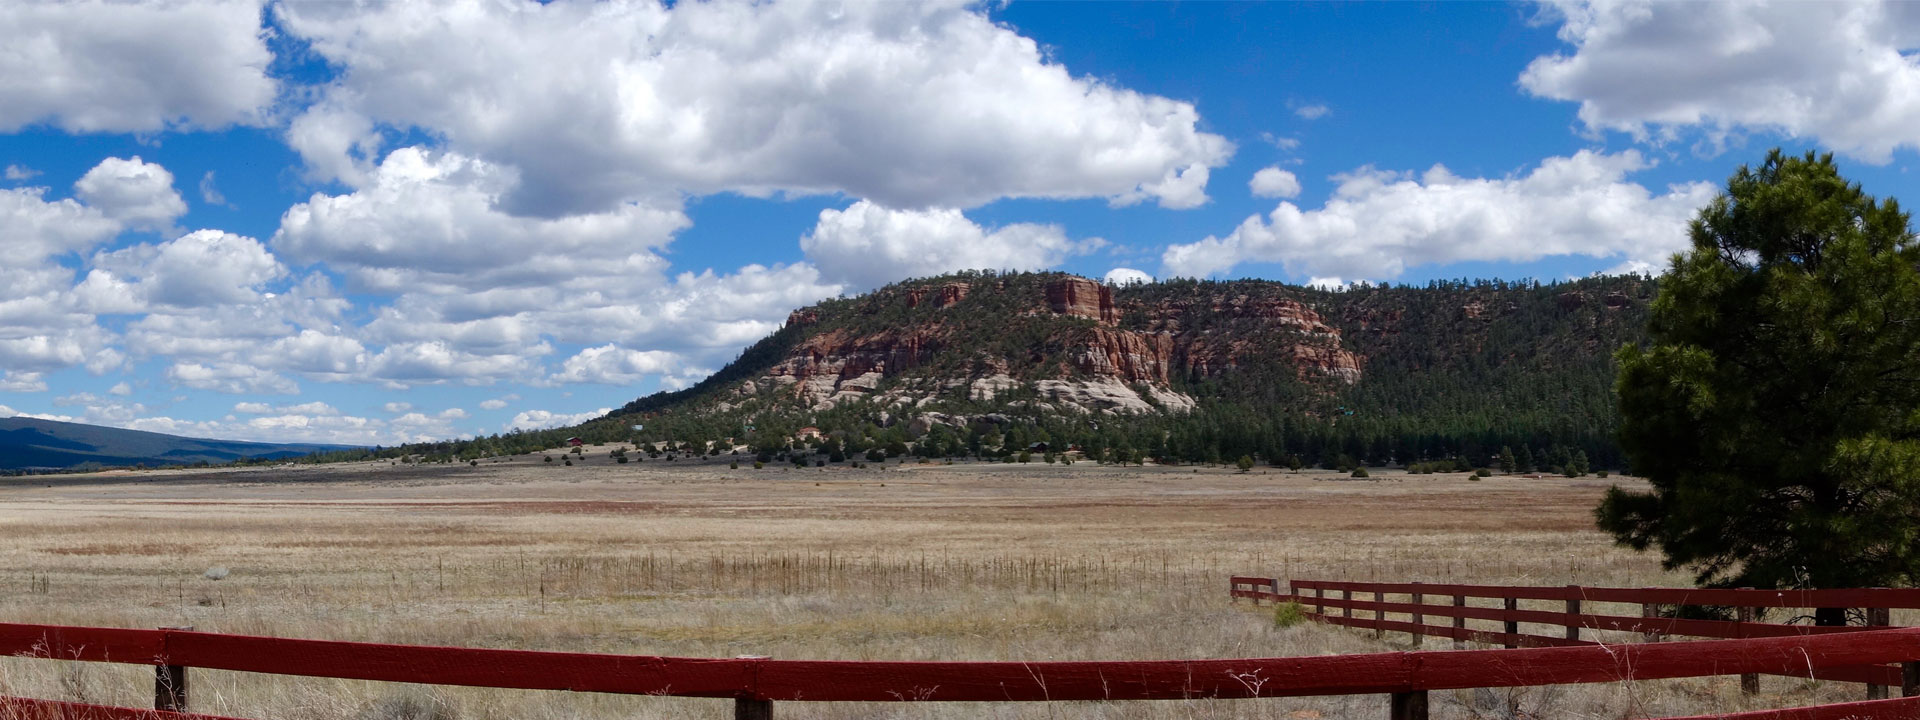 Living In Candy Kitchen New Mexico Land For Sale